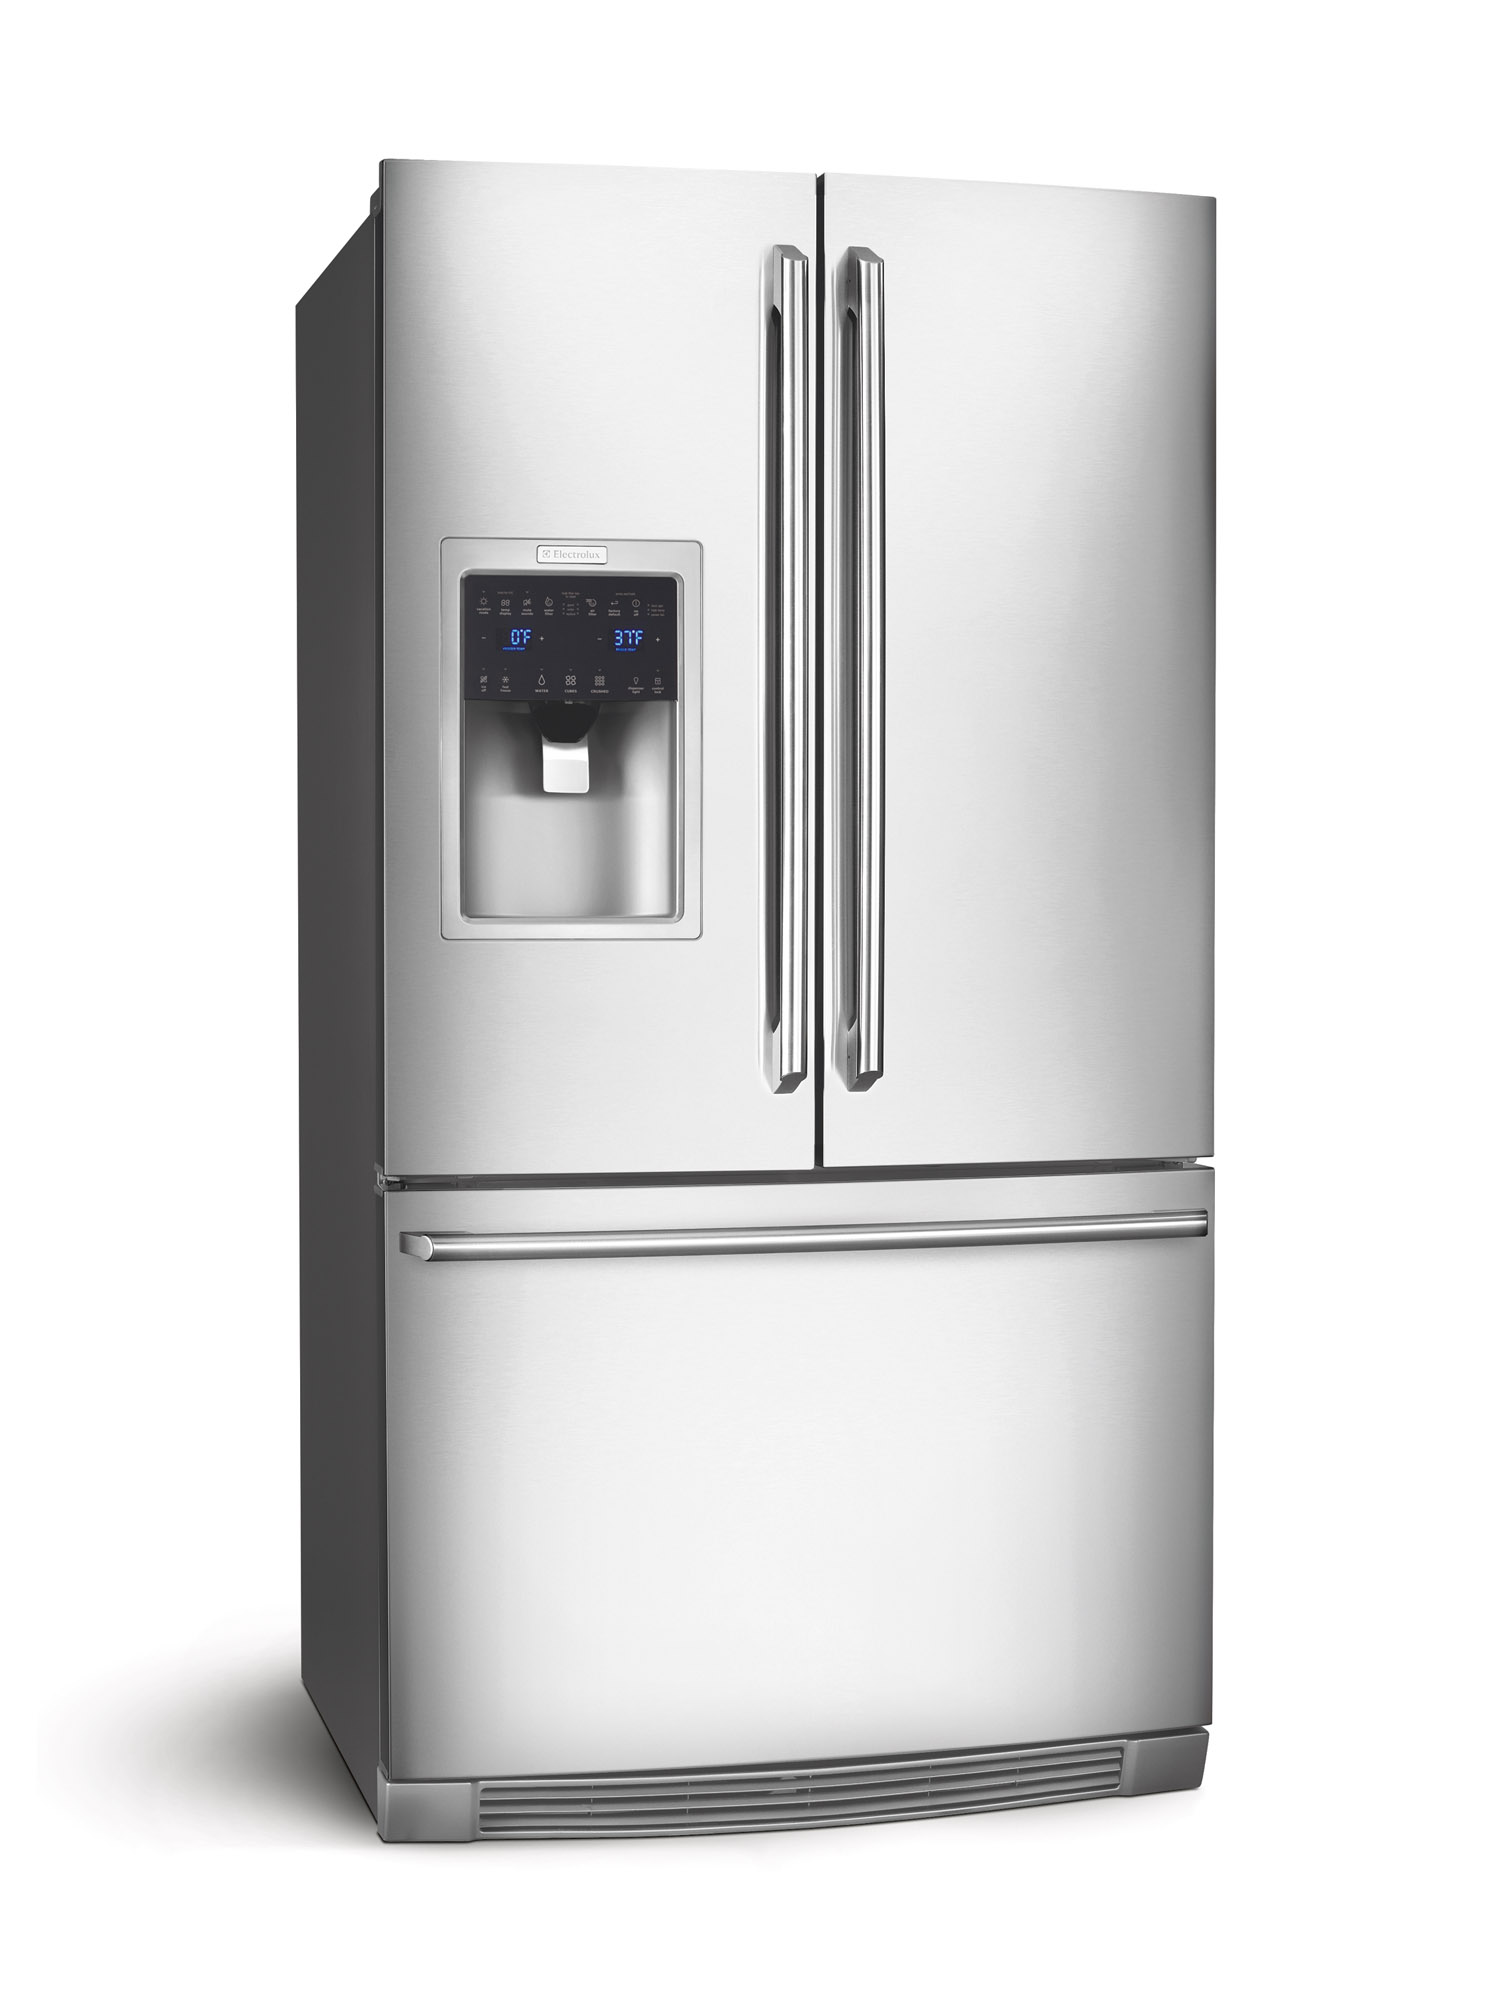 Electrolux Brings Innovative Technology to Your Kitchen